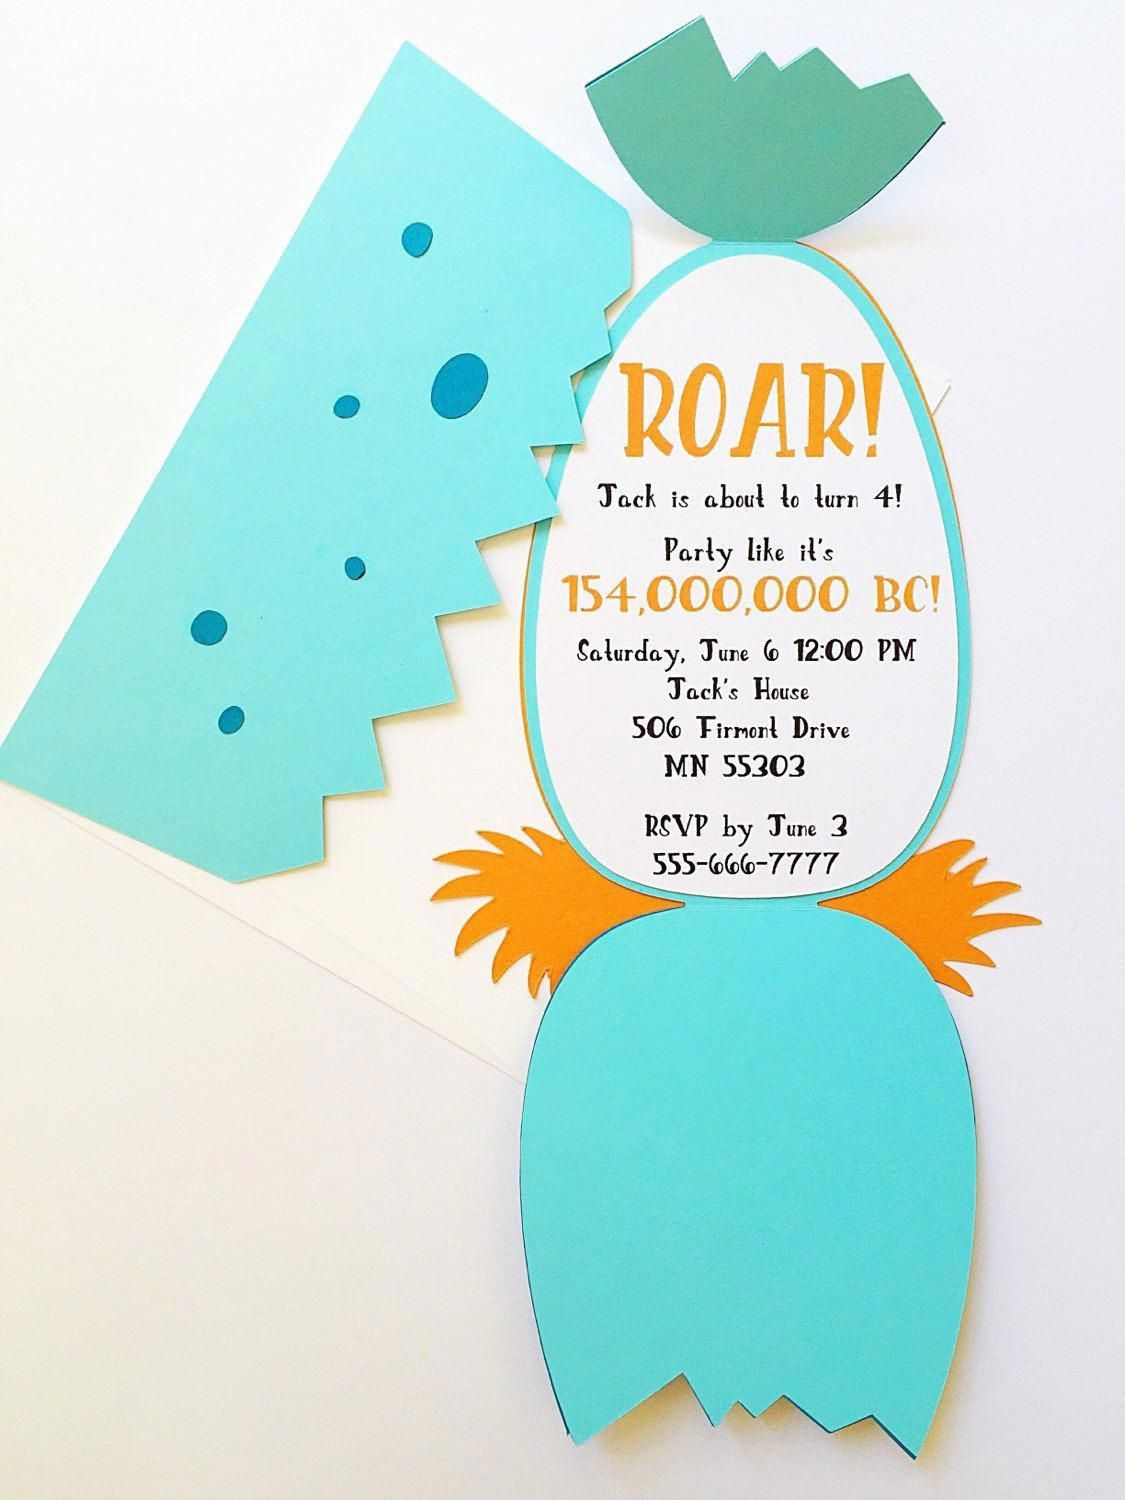 Dinosaur Baby Shower Invitations Online Invitation Template Cheap - Free Printable Dinosaur Baby Shower Invitations